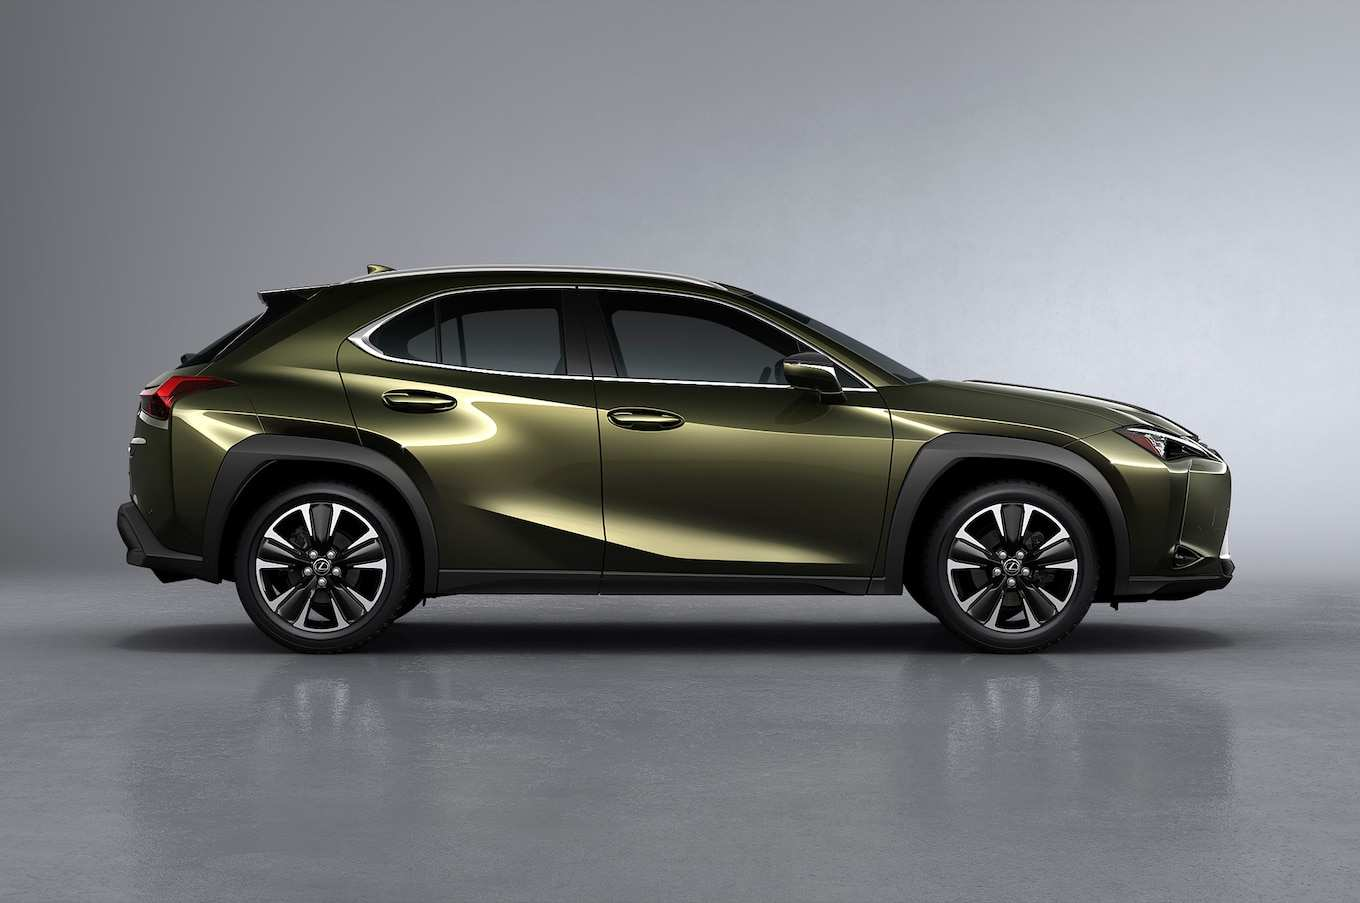 13 New Lexus Ux 2019 Price 2 Spesification with Lexus Ux 2019 Price 2